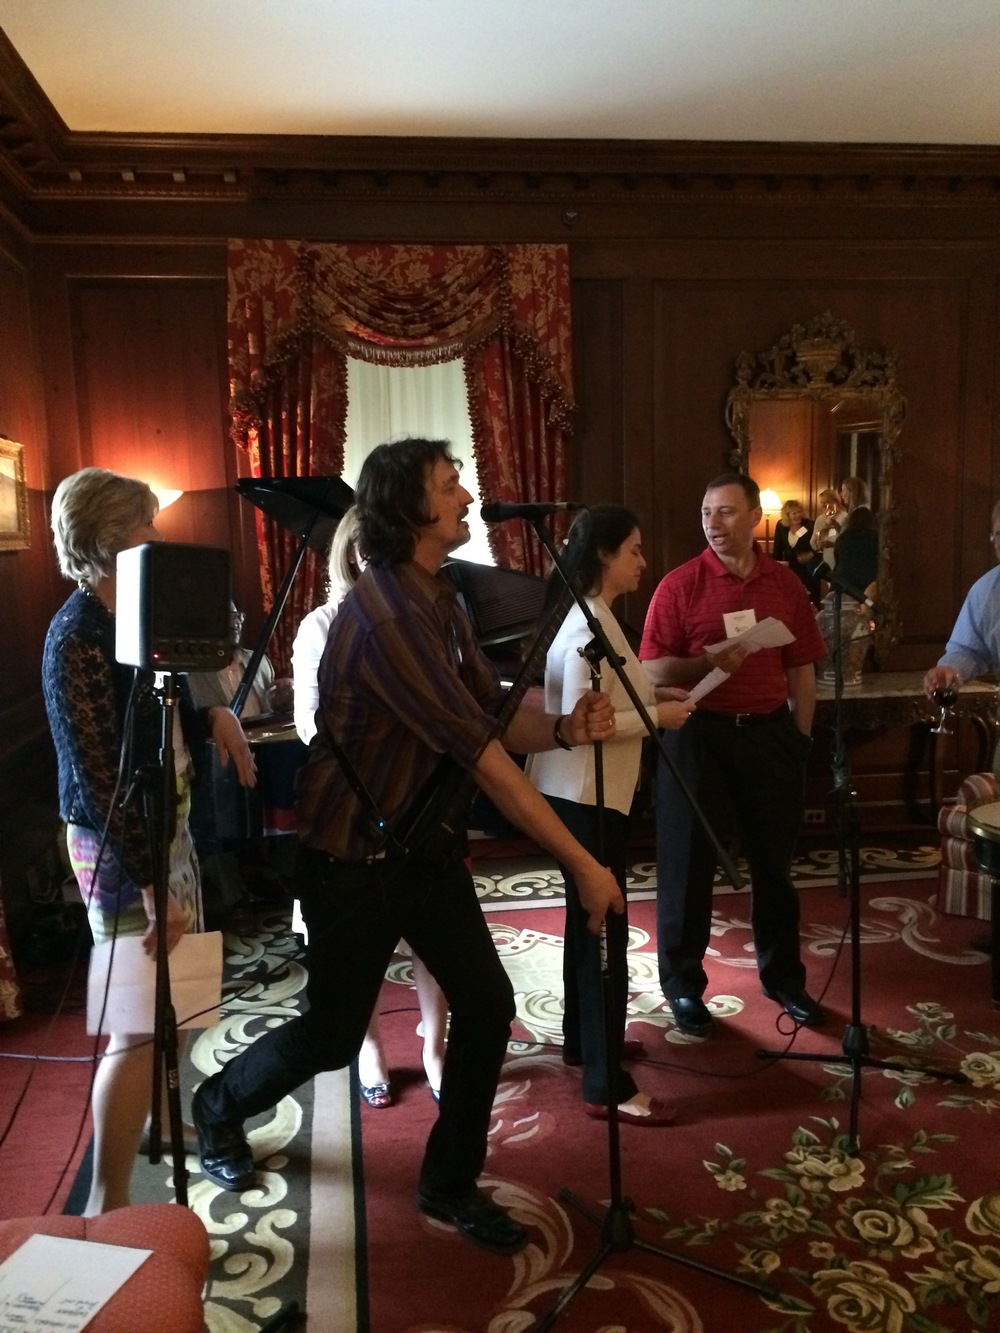 Paul Kwiecinski and Board members from KeyBank, BlackRock, Hopkins Manufacturing and Pfizer sing to the BPI Song with a band at the famed Winston Churchill Suite of the Waldorf Astoria Towers.